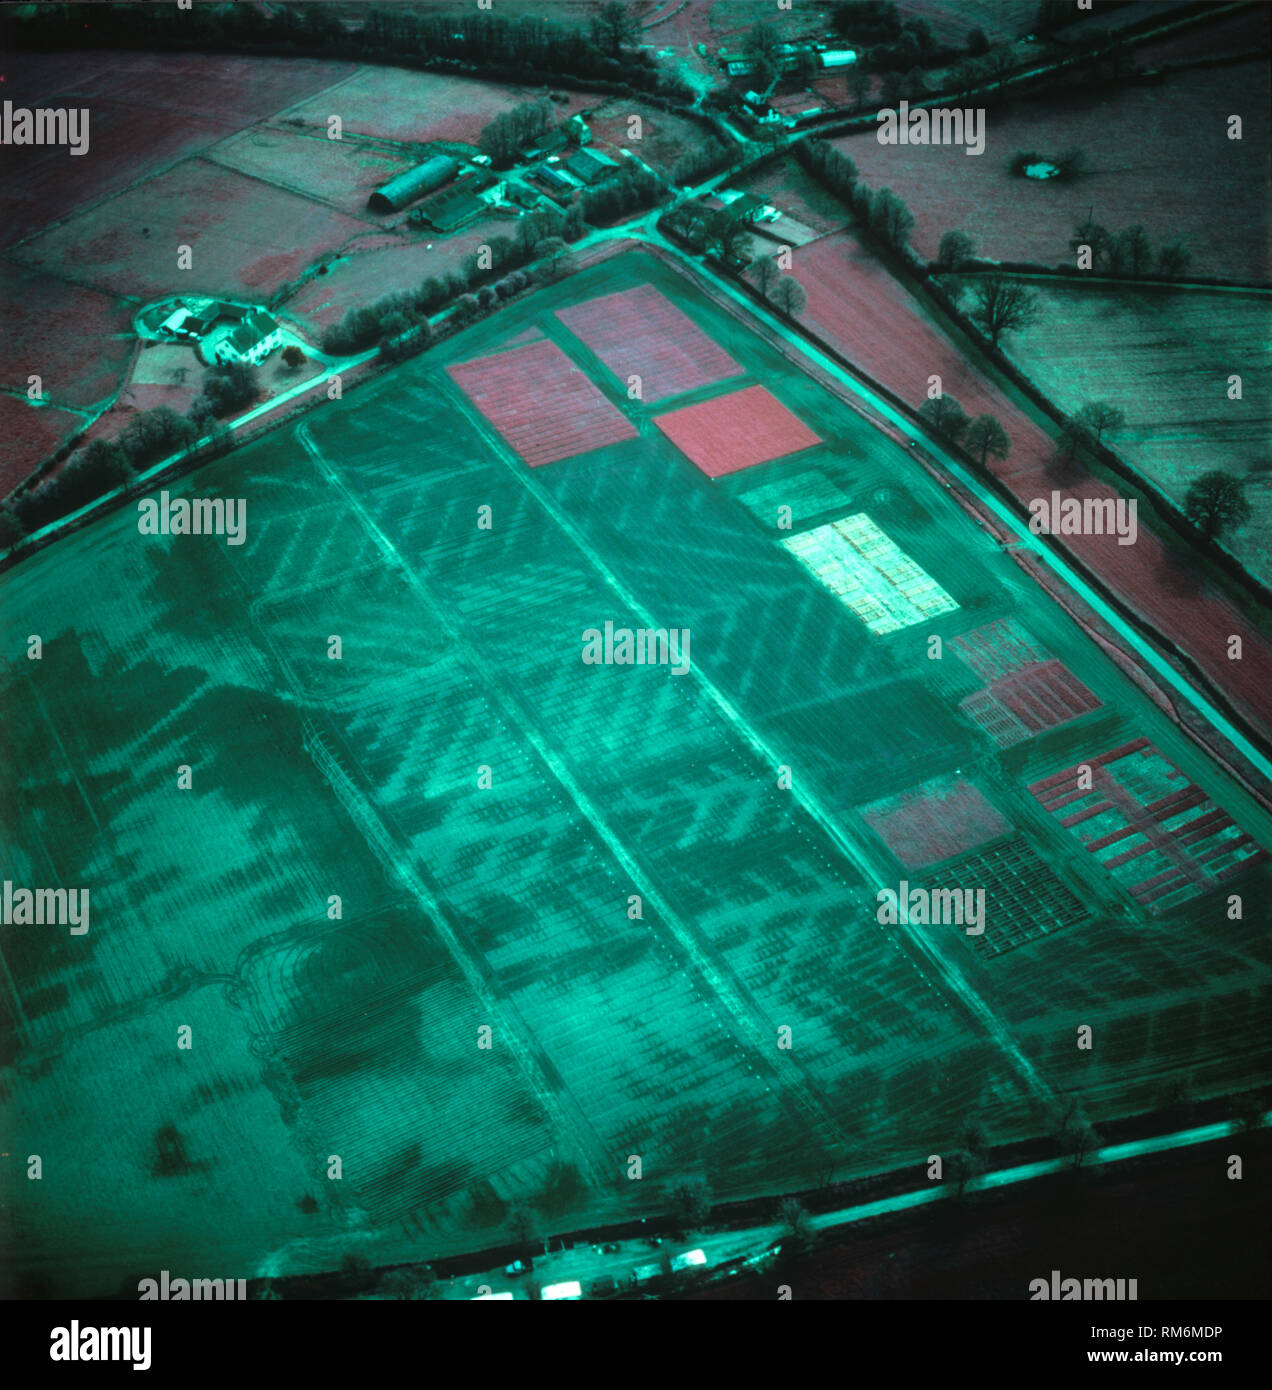 False colour infrared aerial image of a mainly fallow field dark moisture content showing its drainage pattern with pink red patches of vegetation - Stock Image